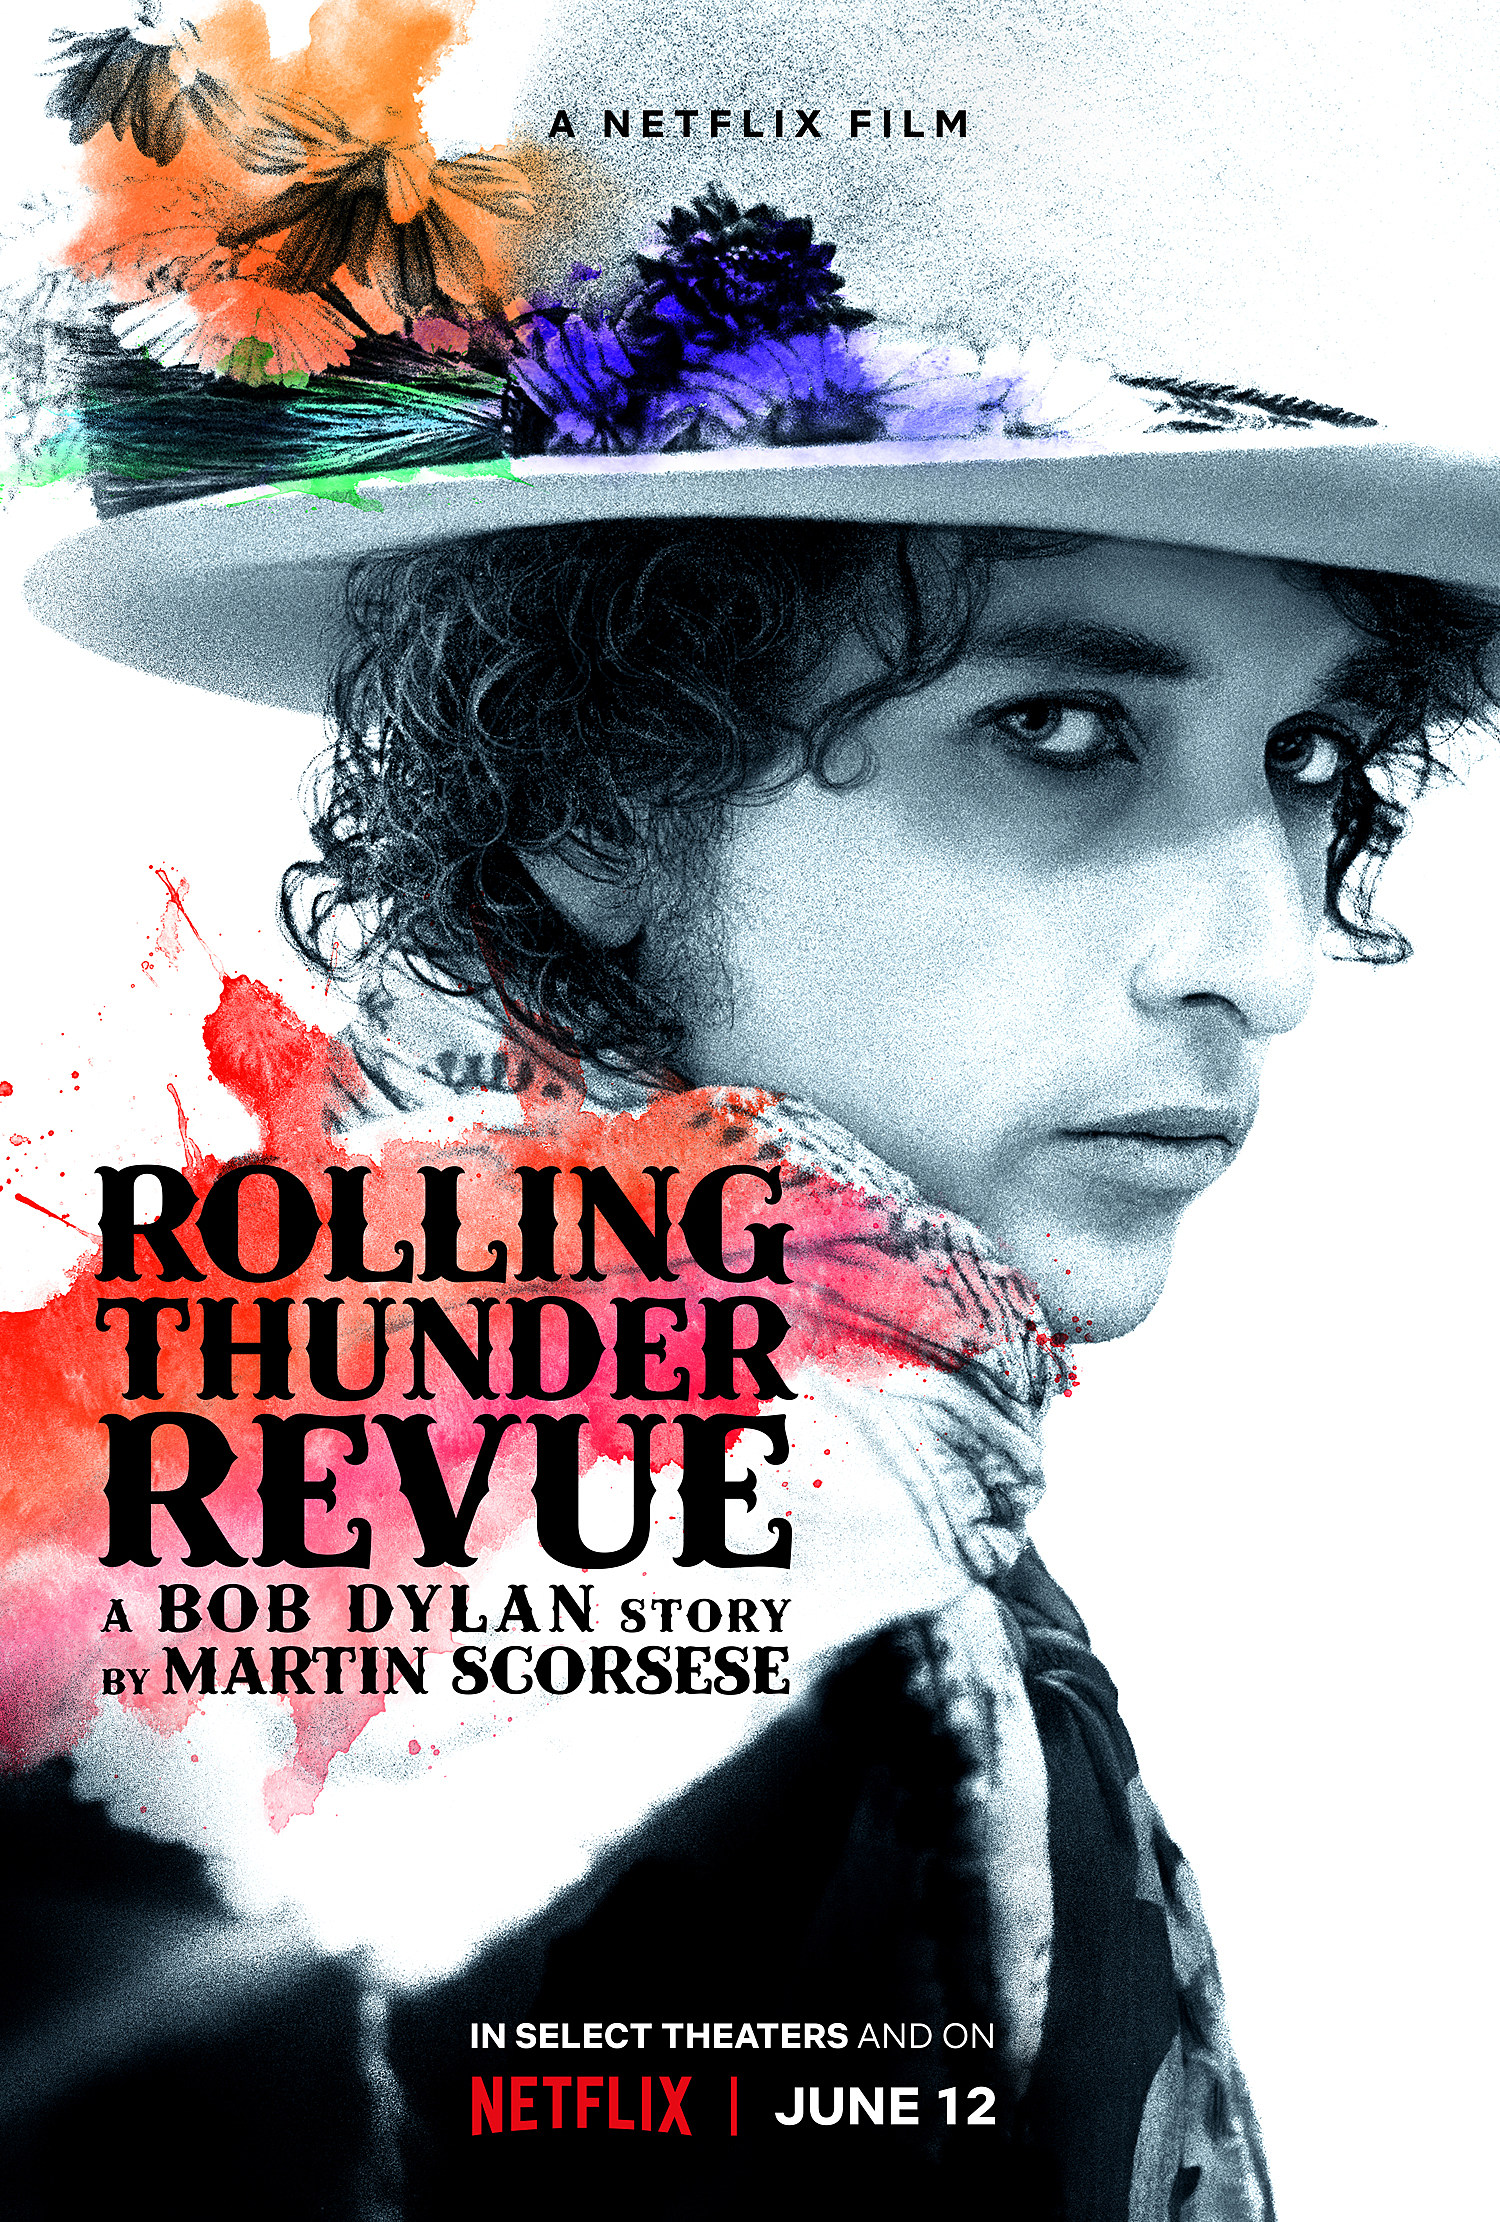 Rolling Thunder Revue- A Bob Dylan Story By Martin Scorsese